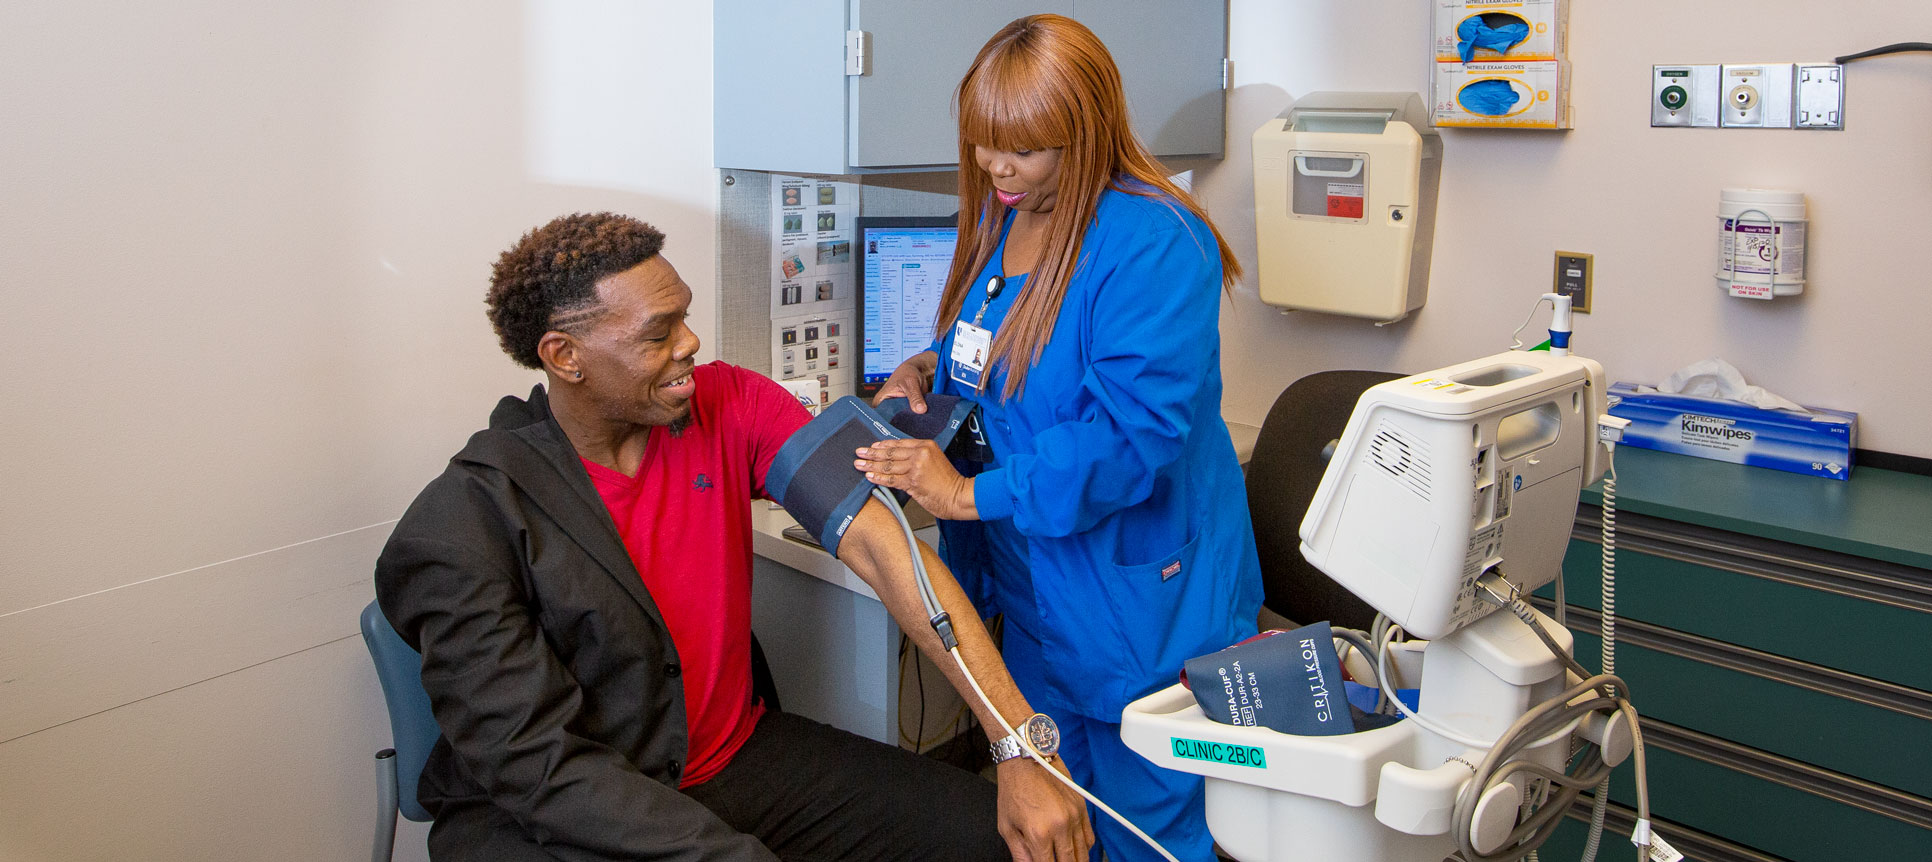 Kenn Wiggins meets with a provider